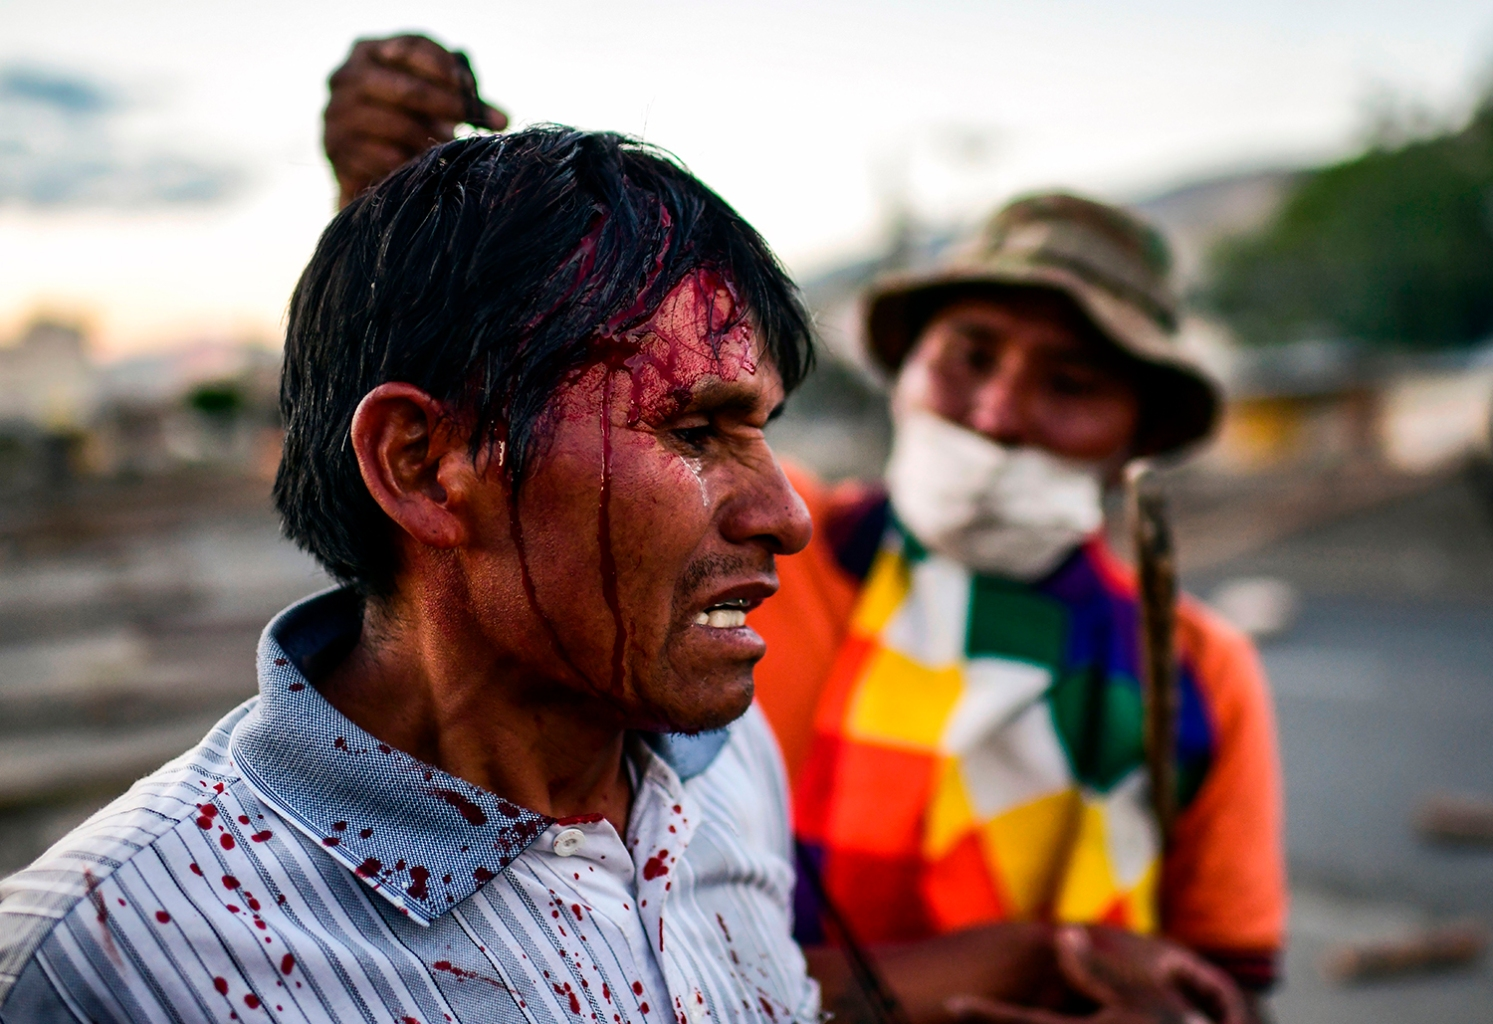 BOLIVIA | A supporter of Morales gestures after being injured during clashes with riot police near Cochabamba on Nov. 18. RONALDO SCHEMIDT/AFP via Getty Images